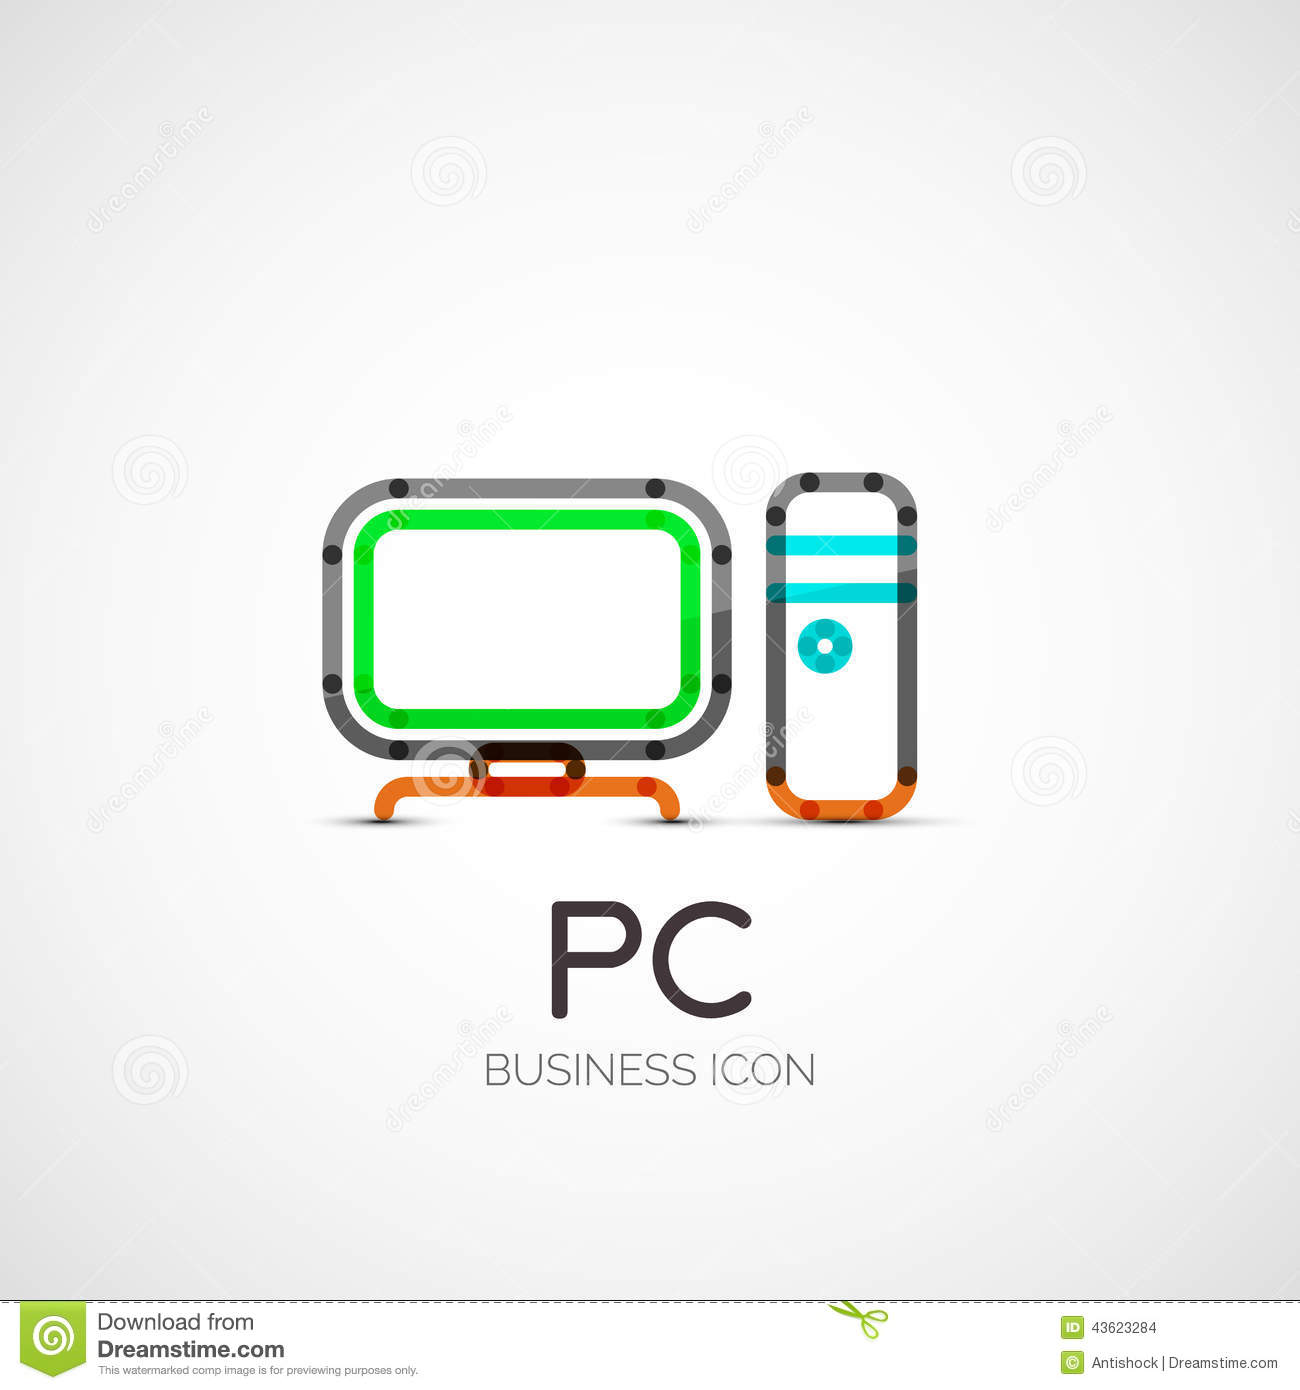 PC Icon Company Logo, Business Concept Stock Vector